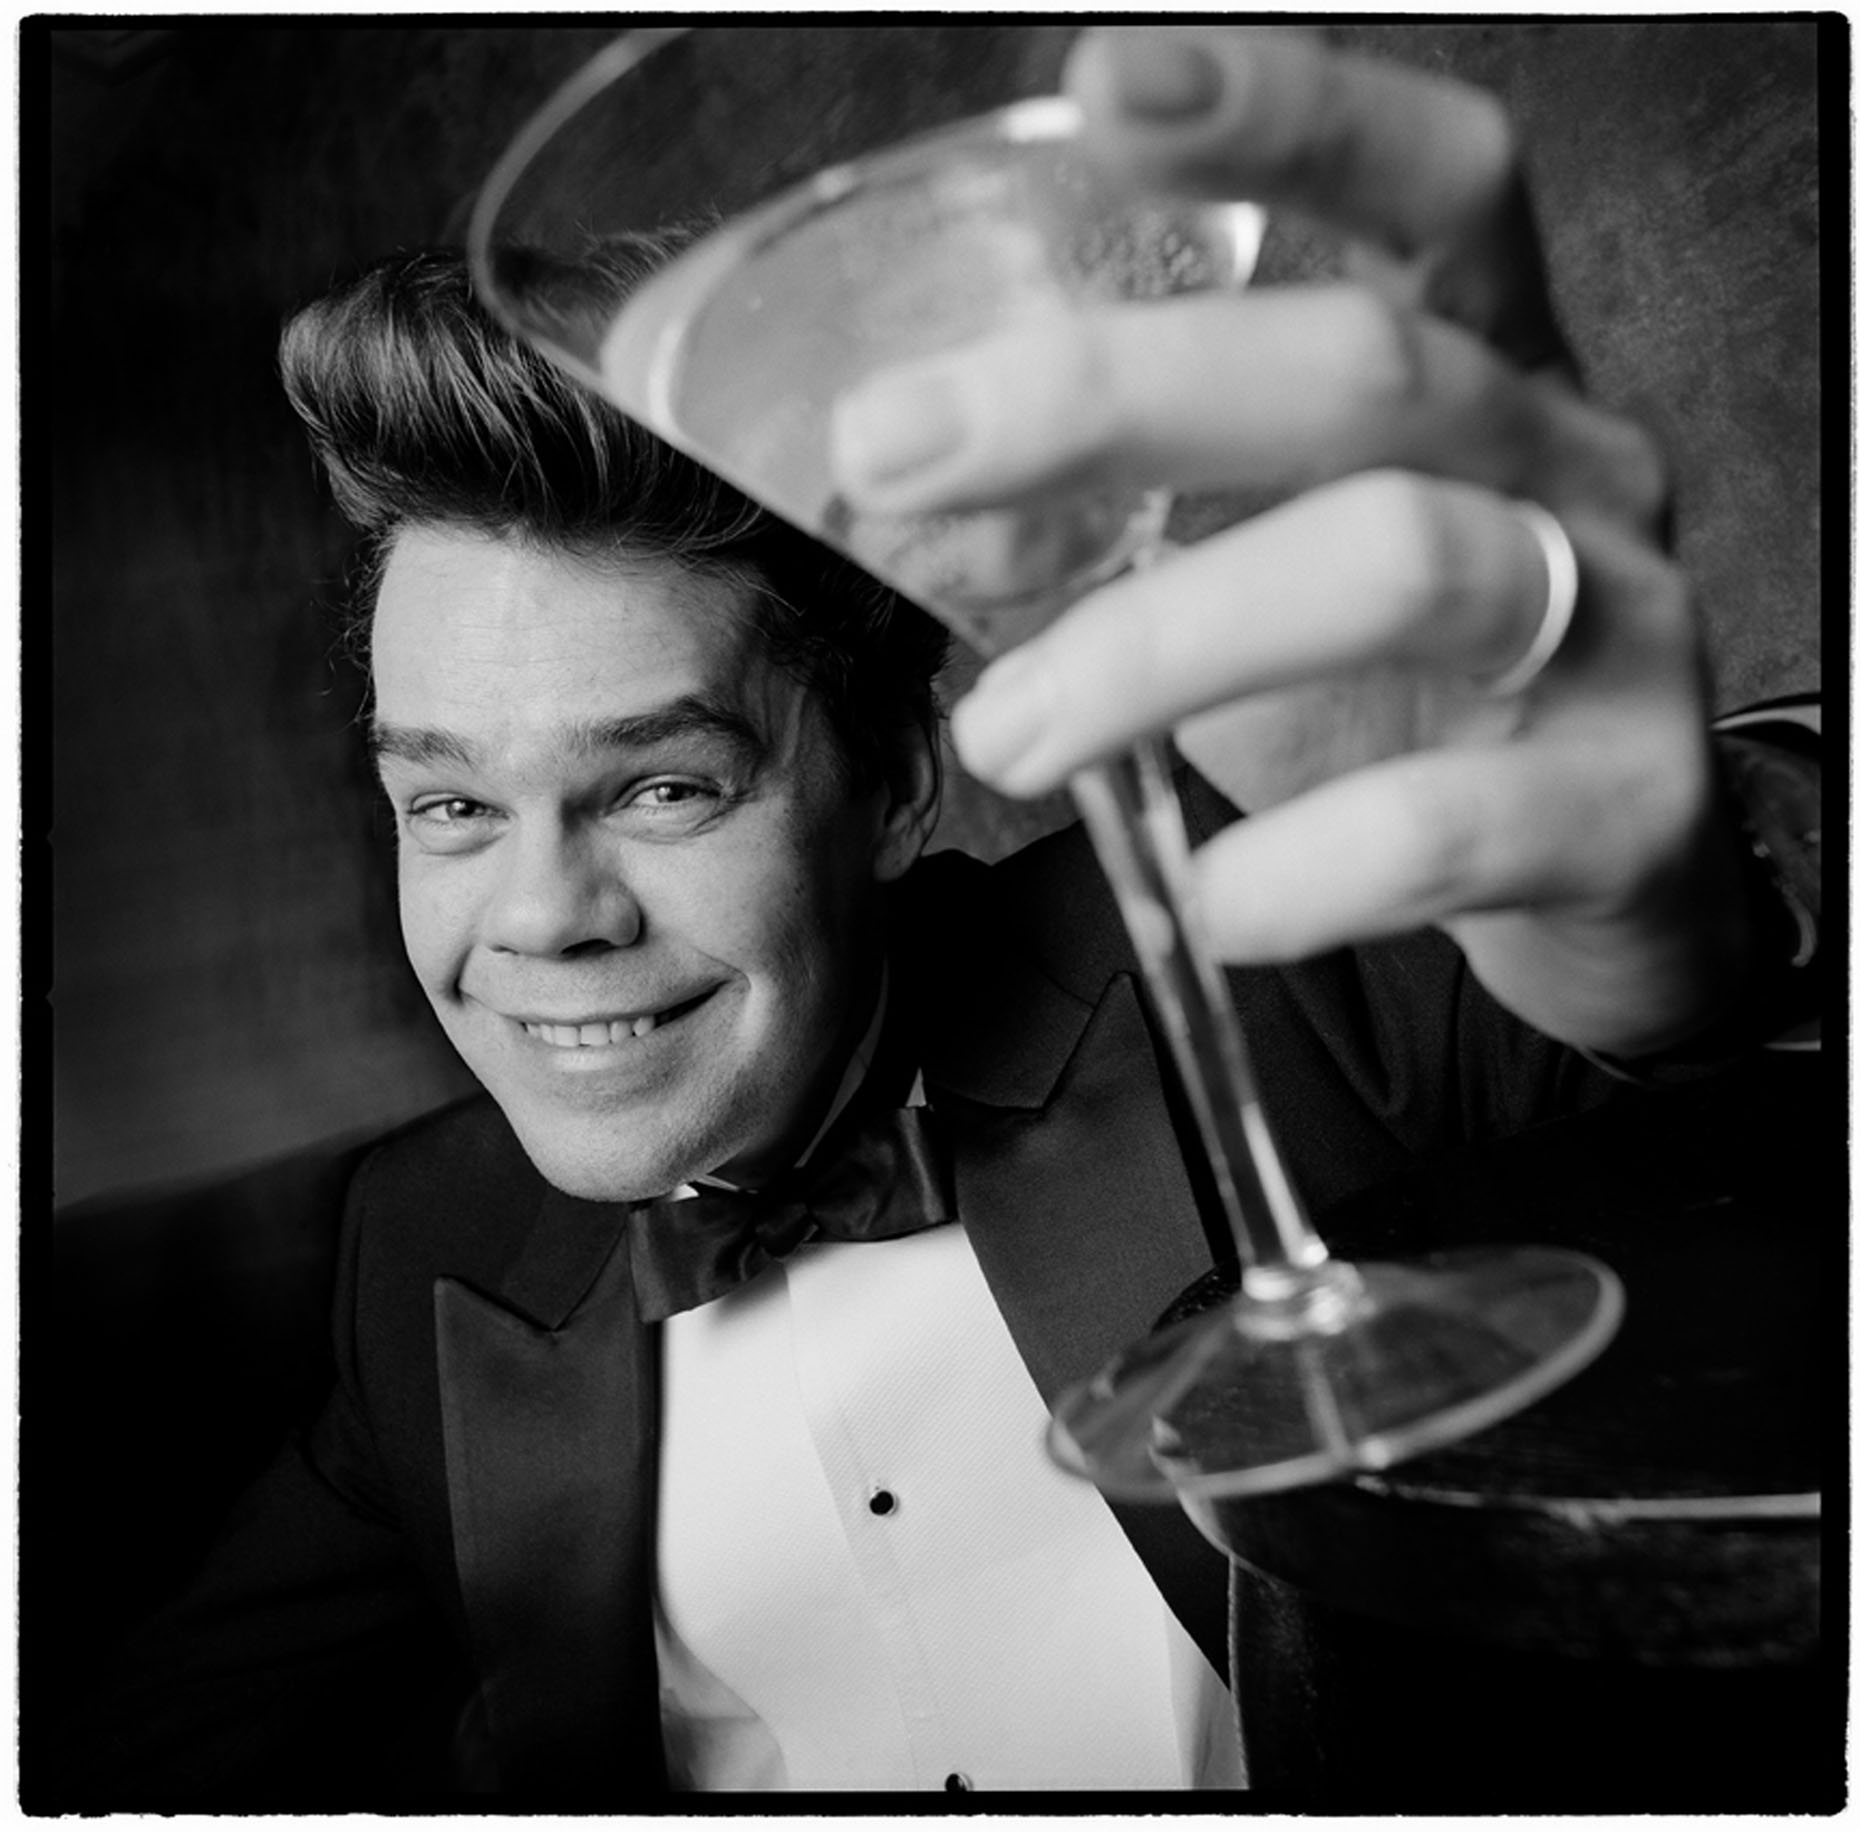 10Buster Poindexter